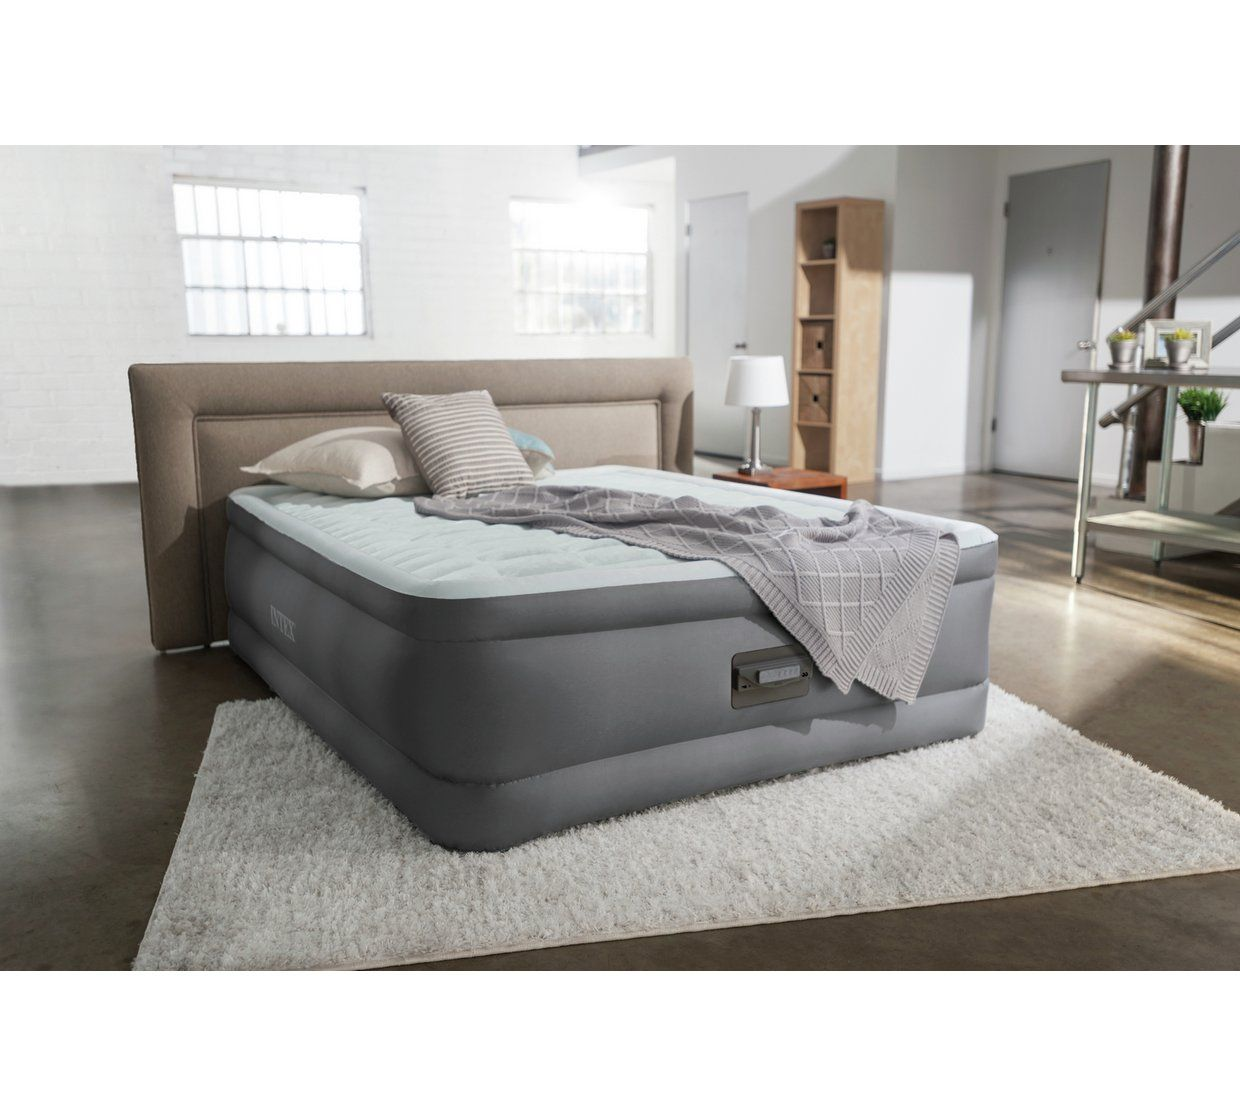 Chauffeuse Intex 110 Intex Queen Premaire Raised Airbed With Pump Air Beds